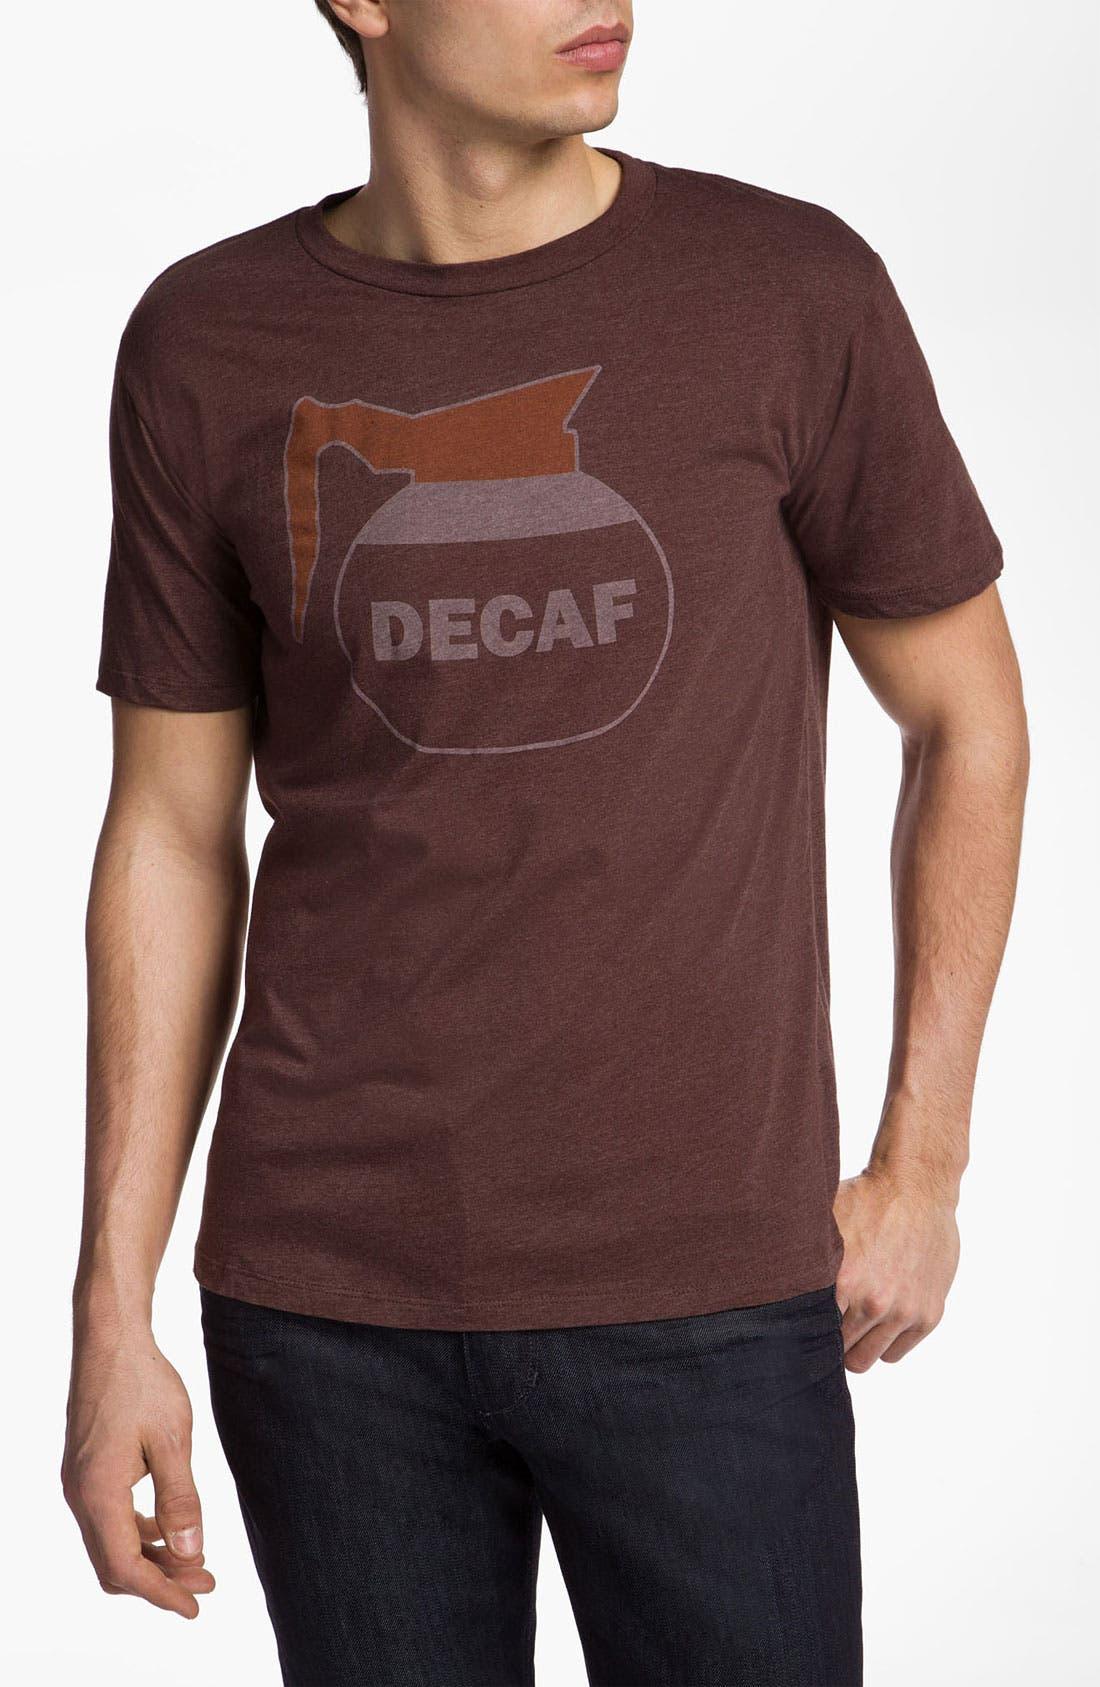 Alternate Image 1 Selected - Headline Shirts 'Decaf' Graphic T-Shirt